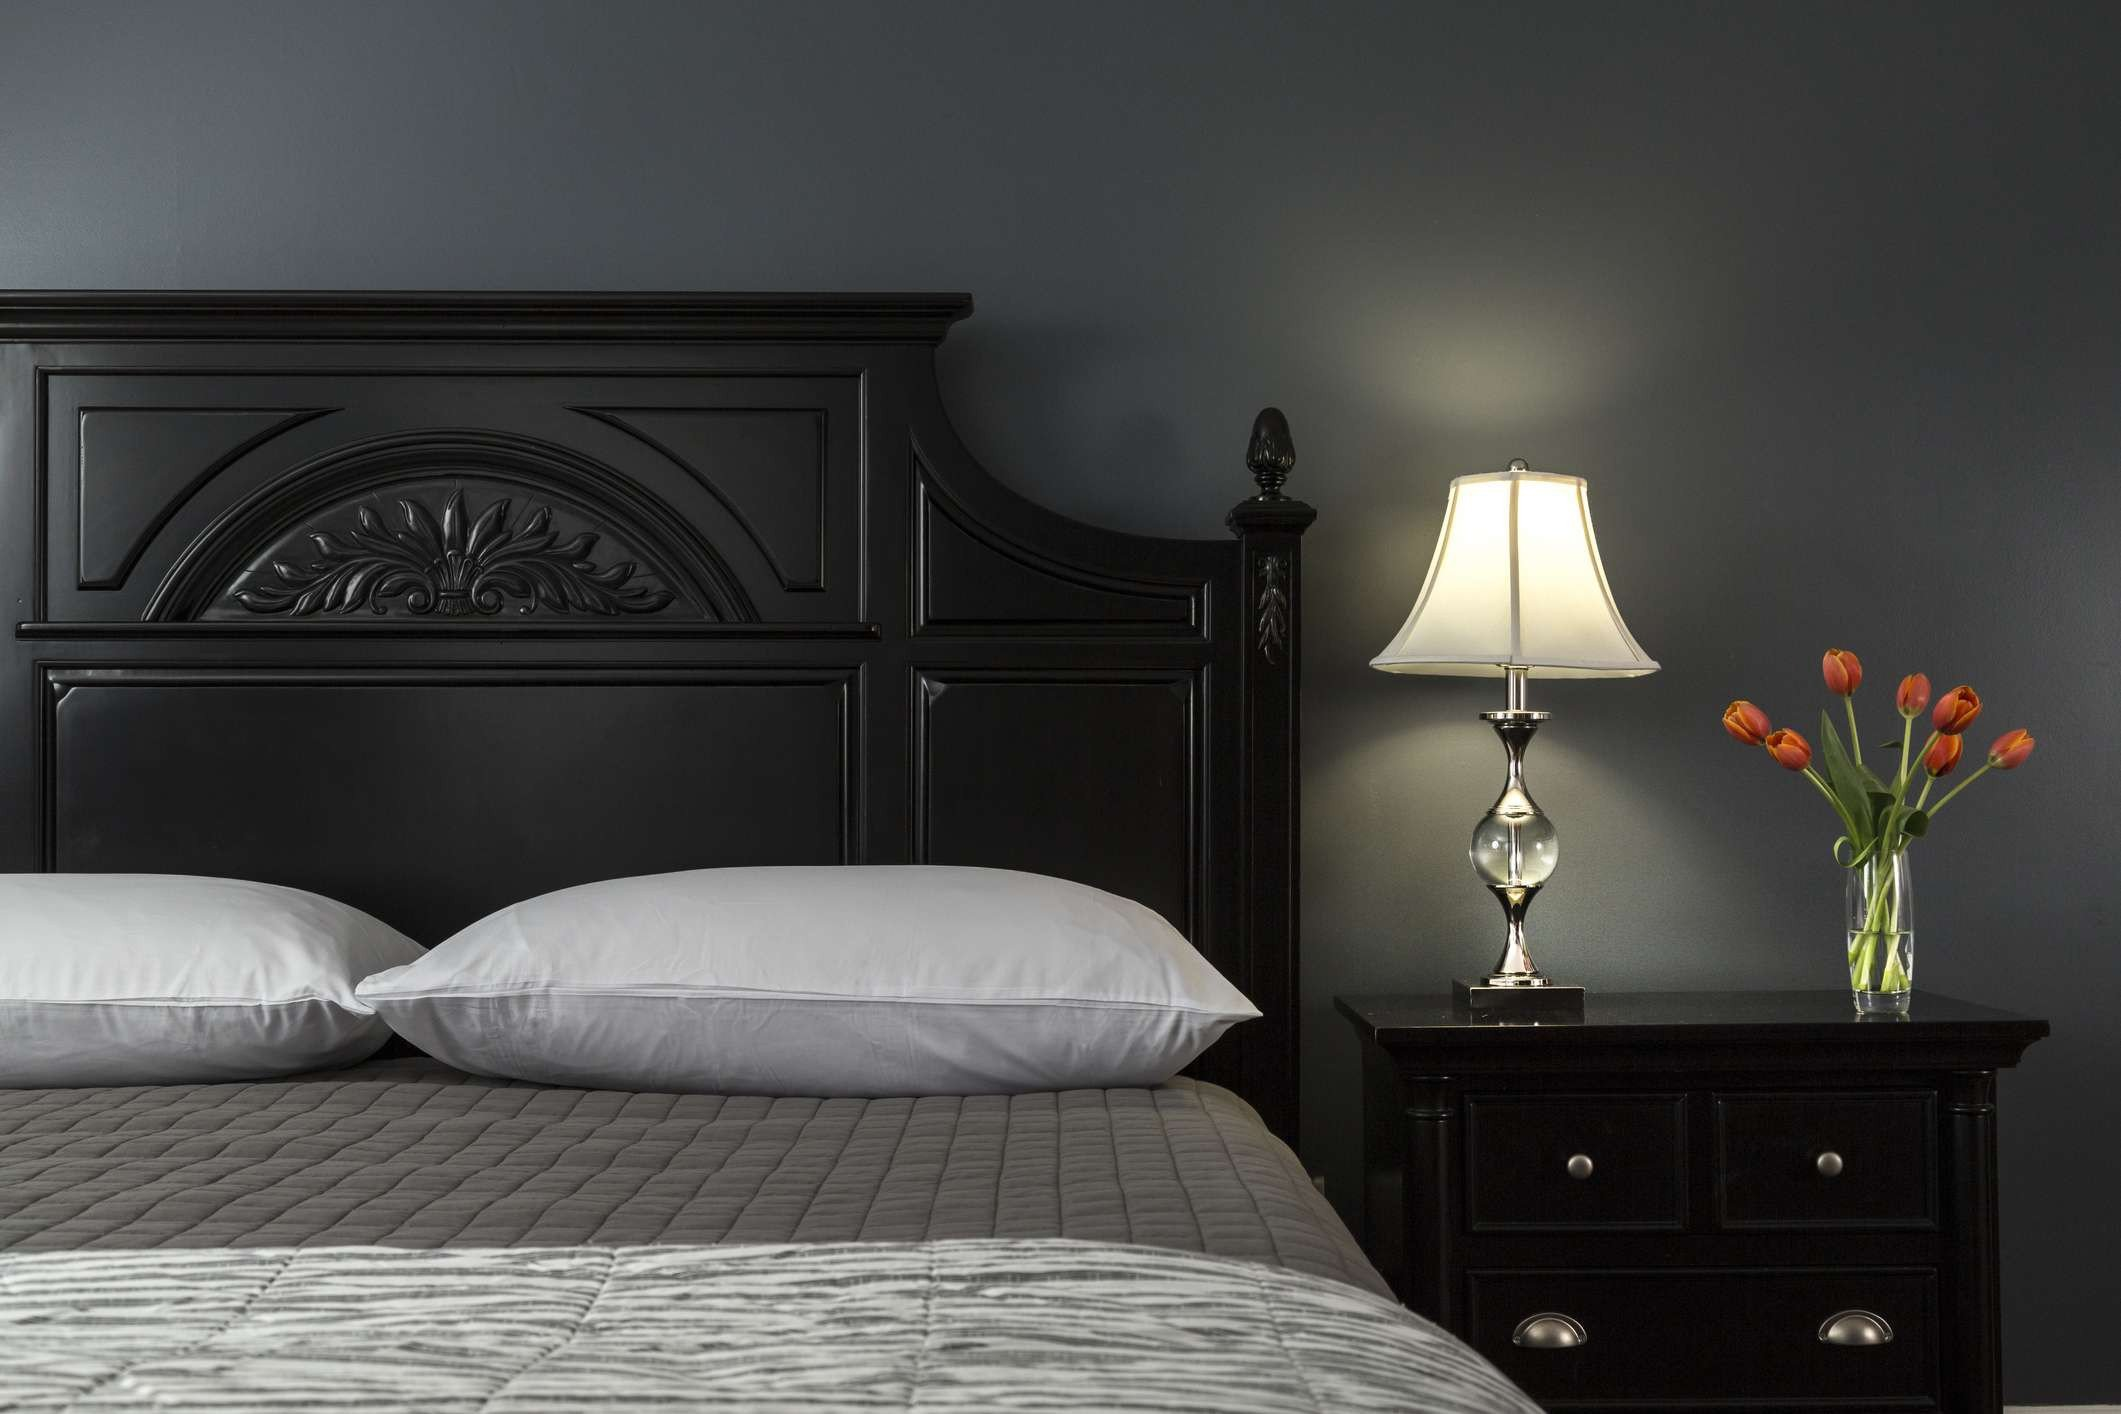 Gothic Bedroom Furniture for Sale Elegant Decorating Ideas for Dark Colored Bedroom Walls